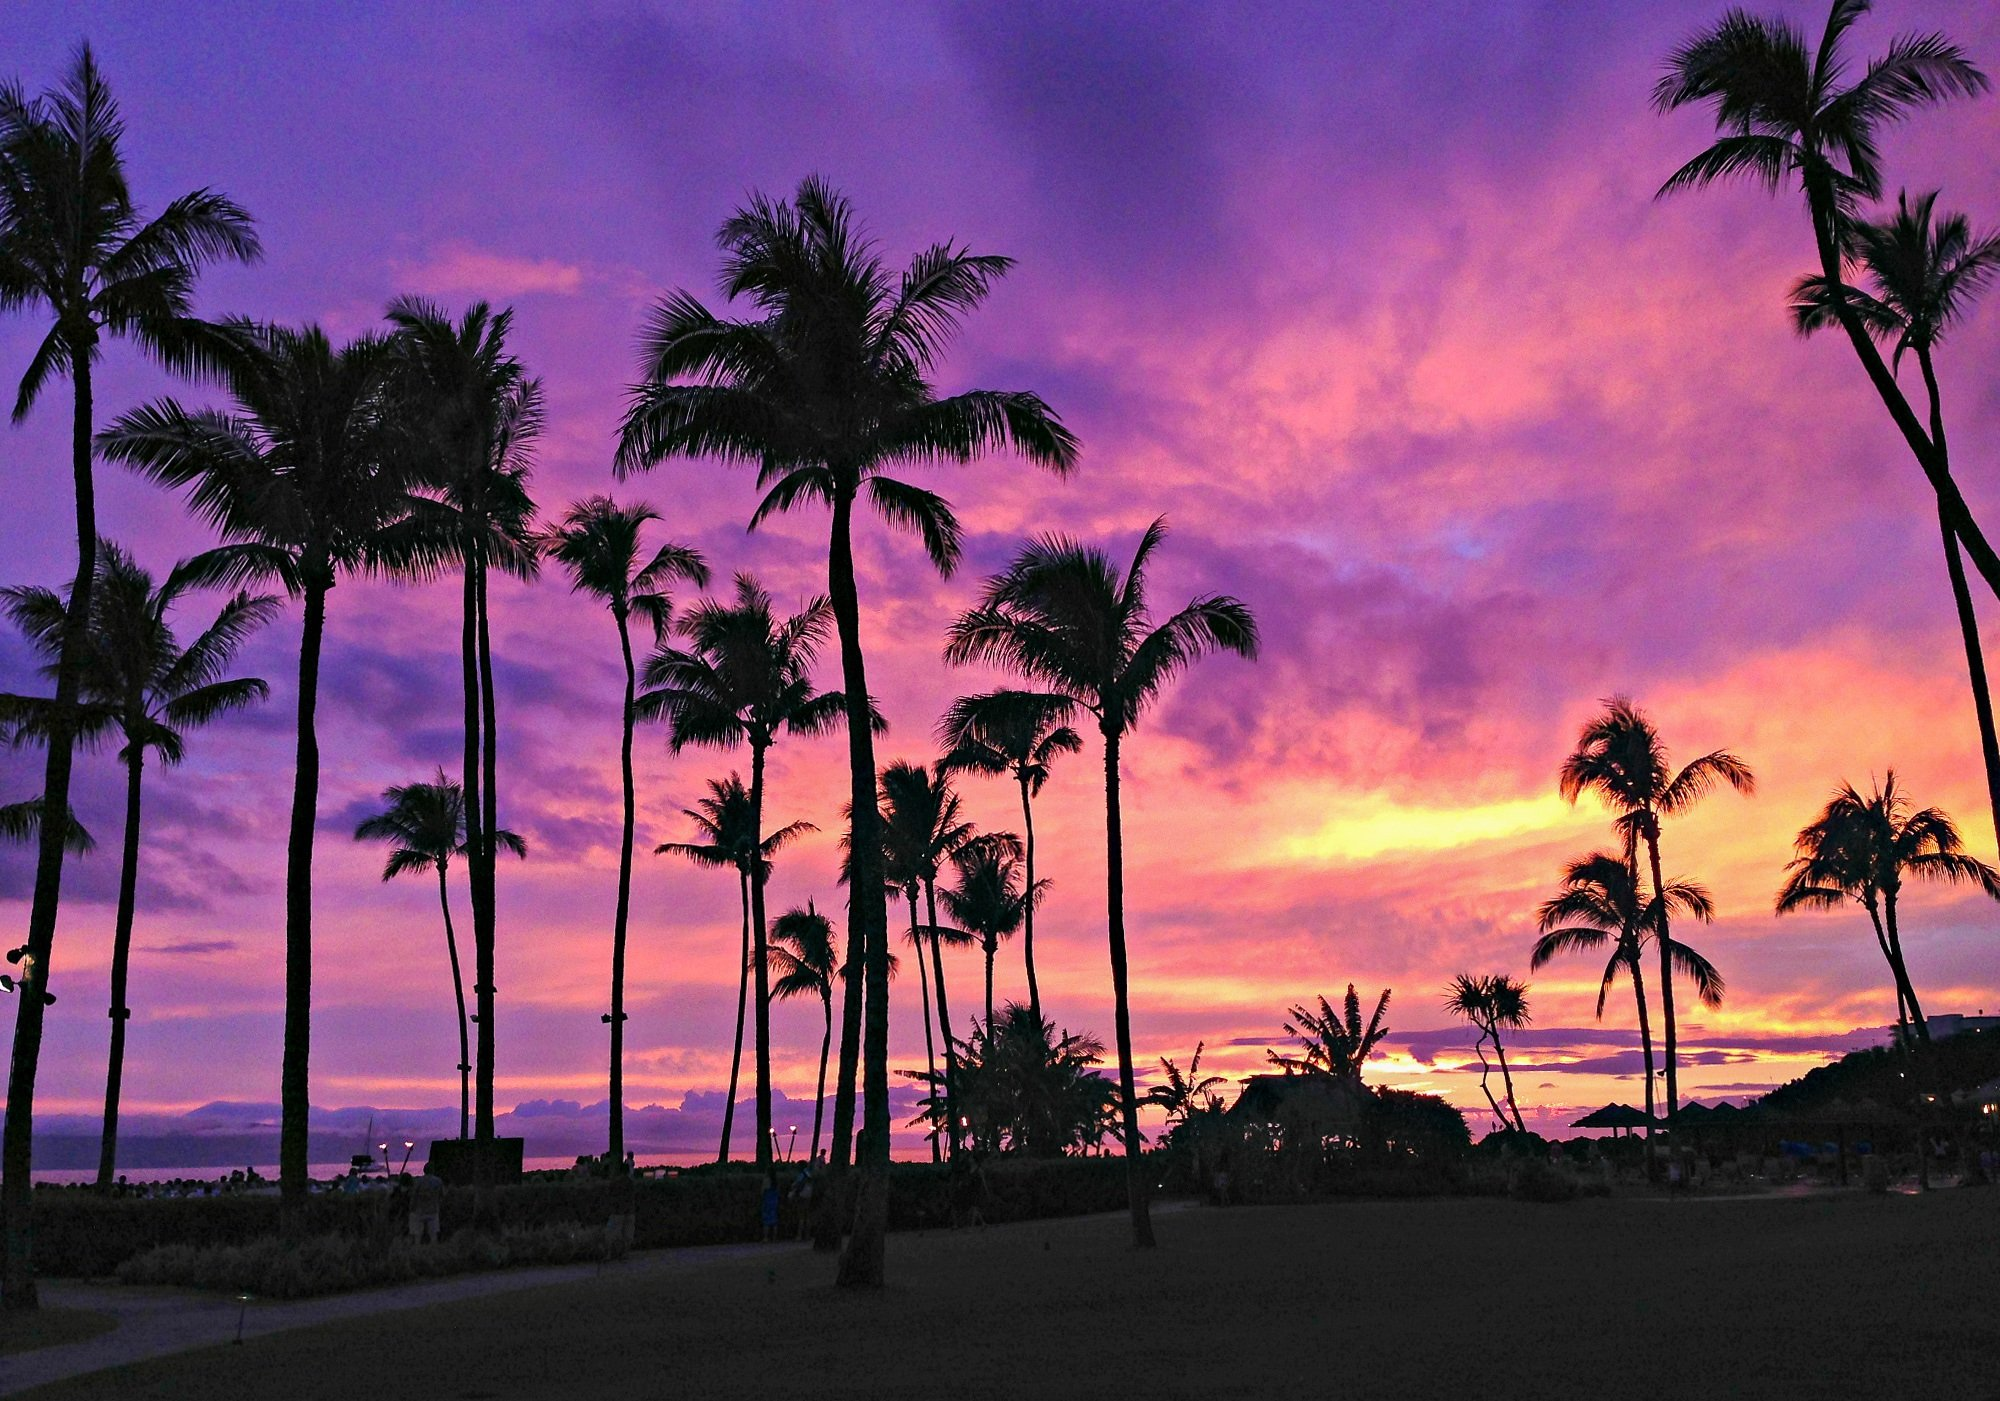 Maui sunset at Sheraton Maui Resort